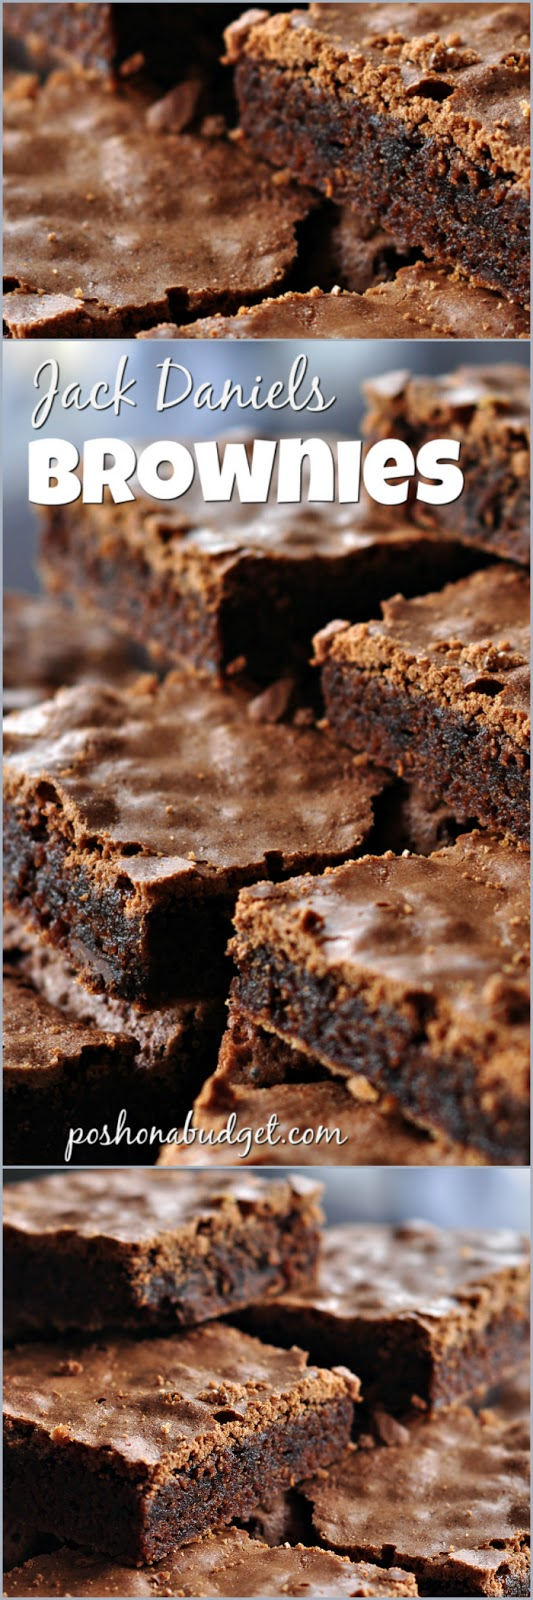 Jack Daniels (Inspired) Brownies